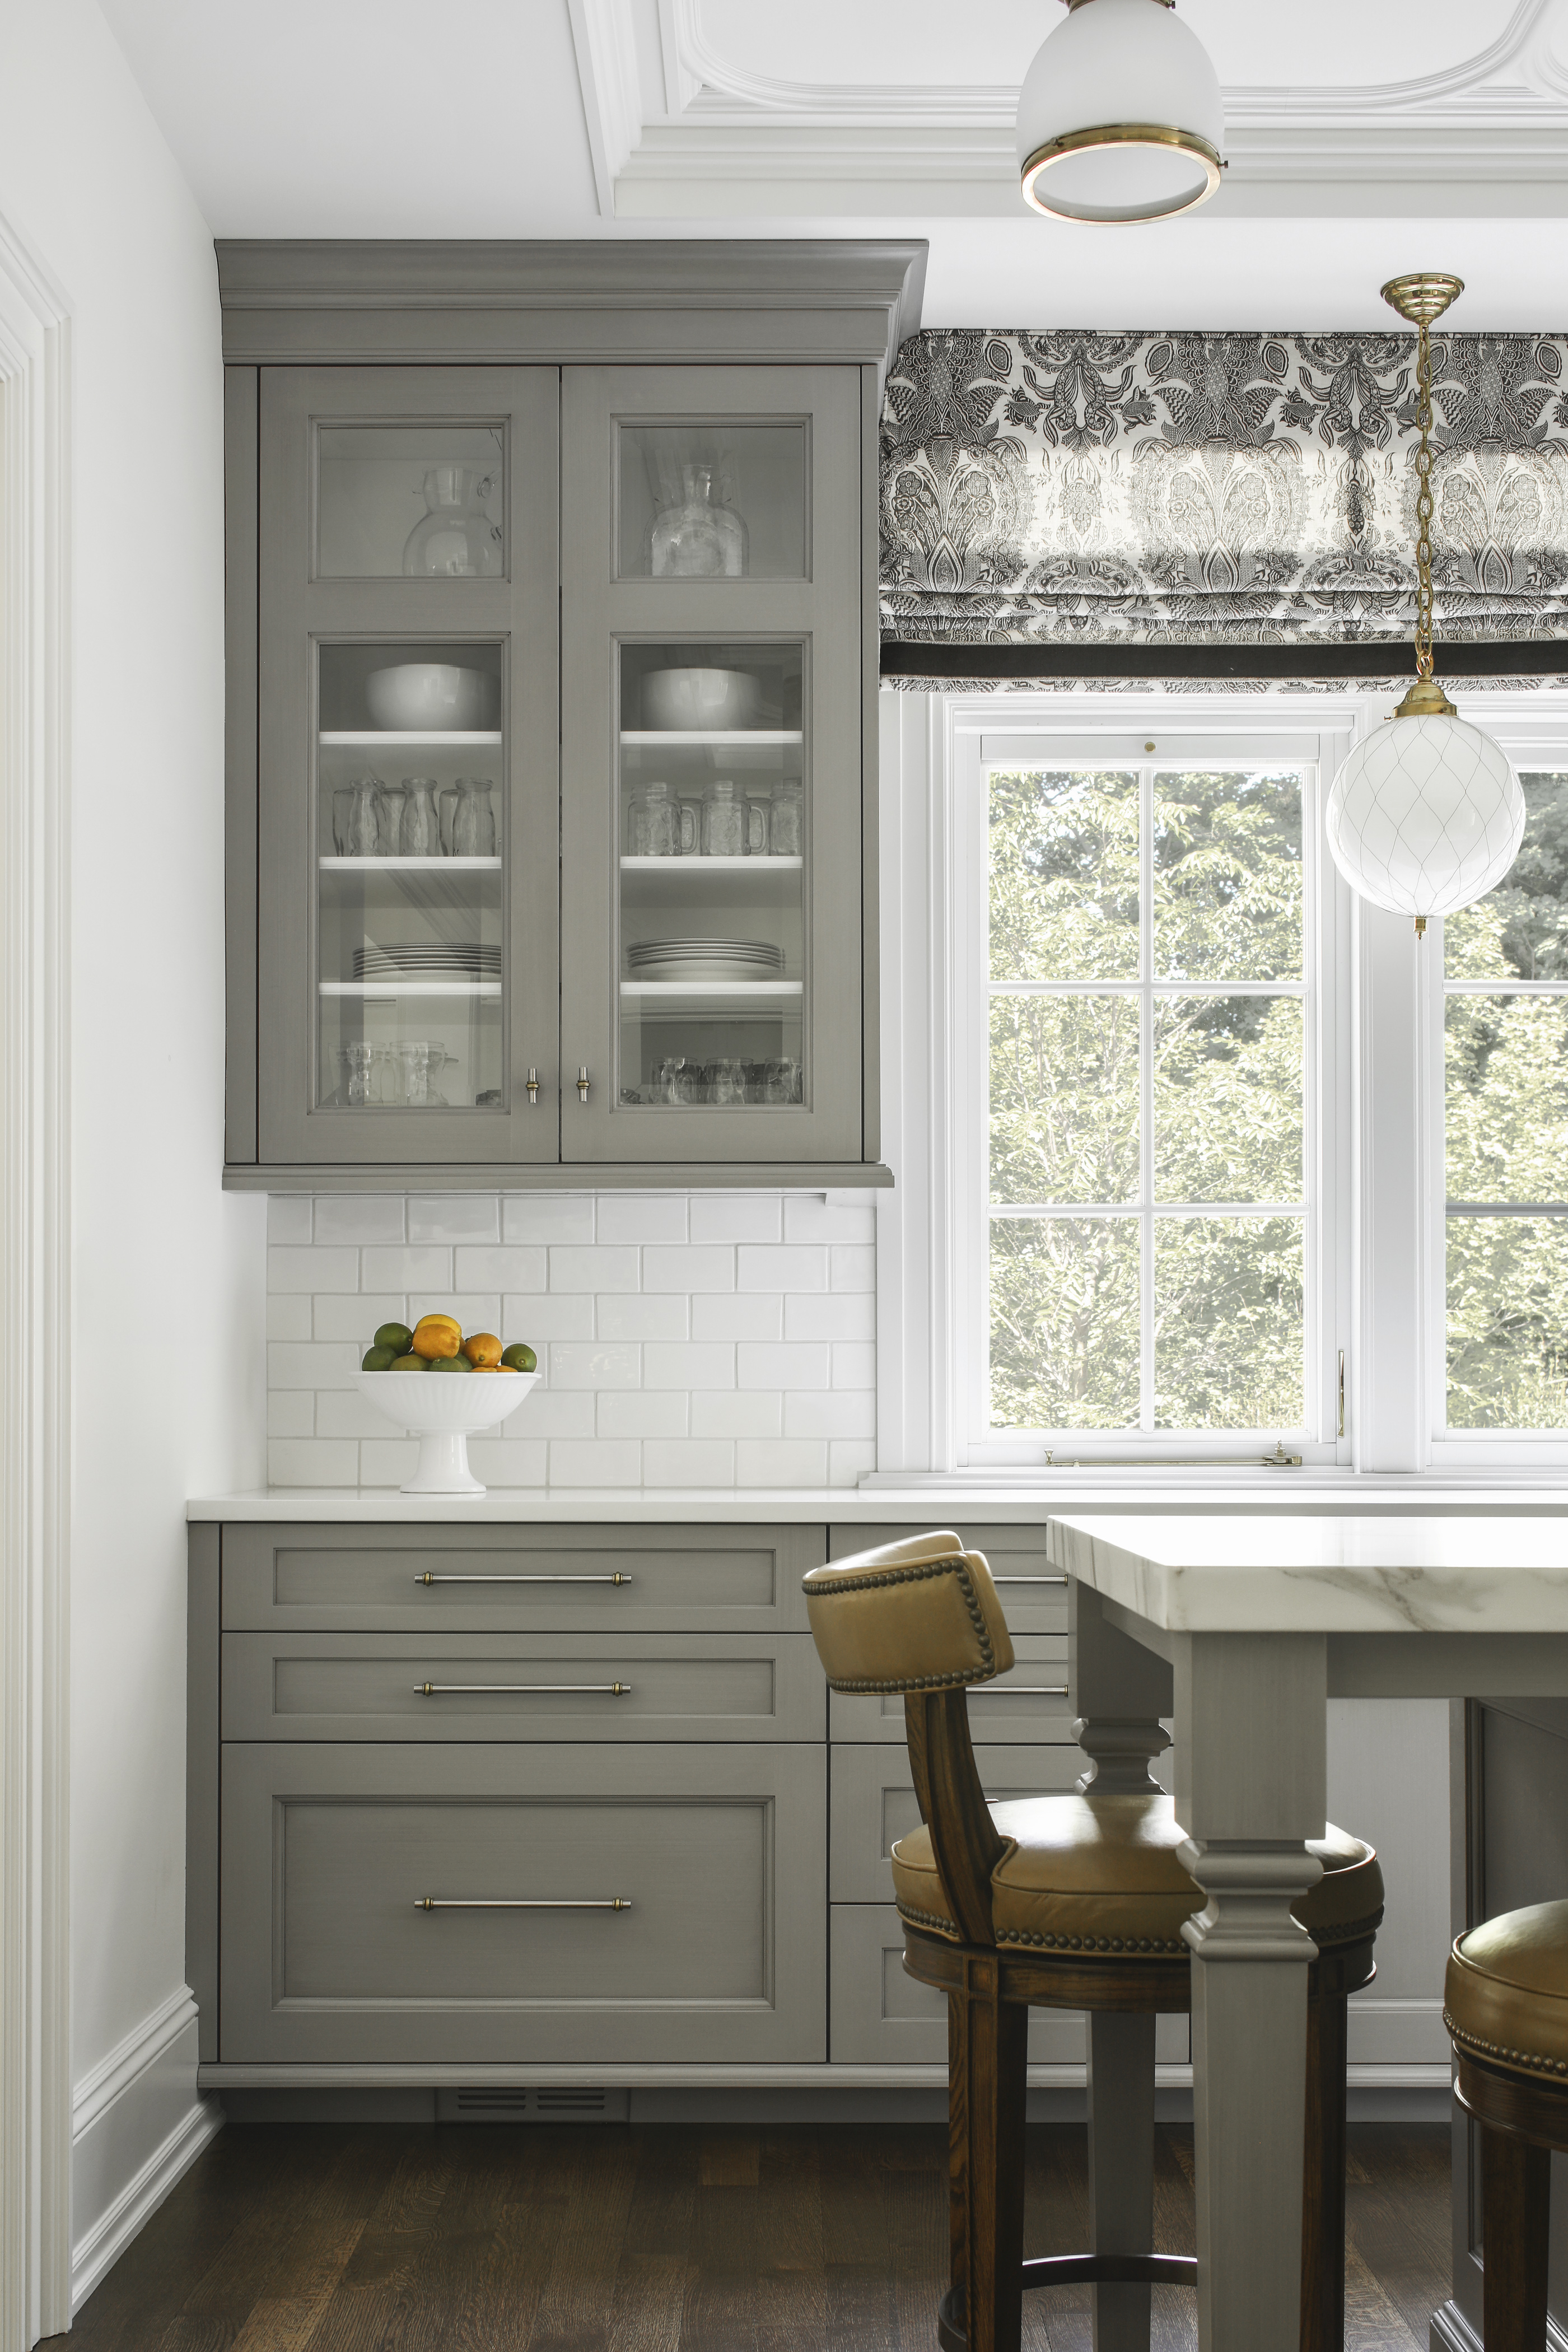 Heidi Piron - Kitchen Design